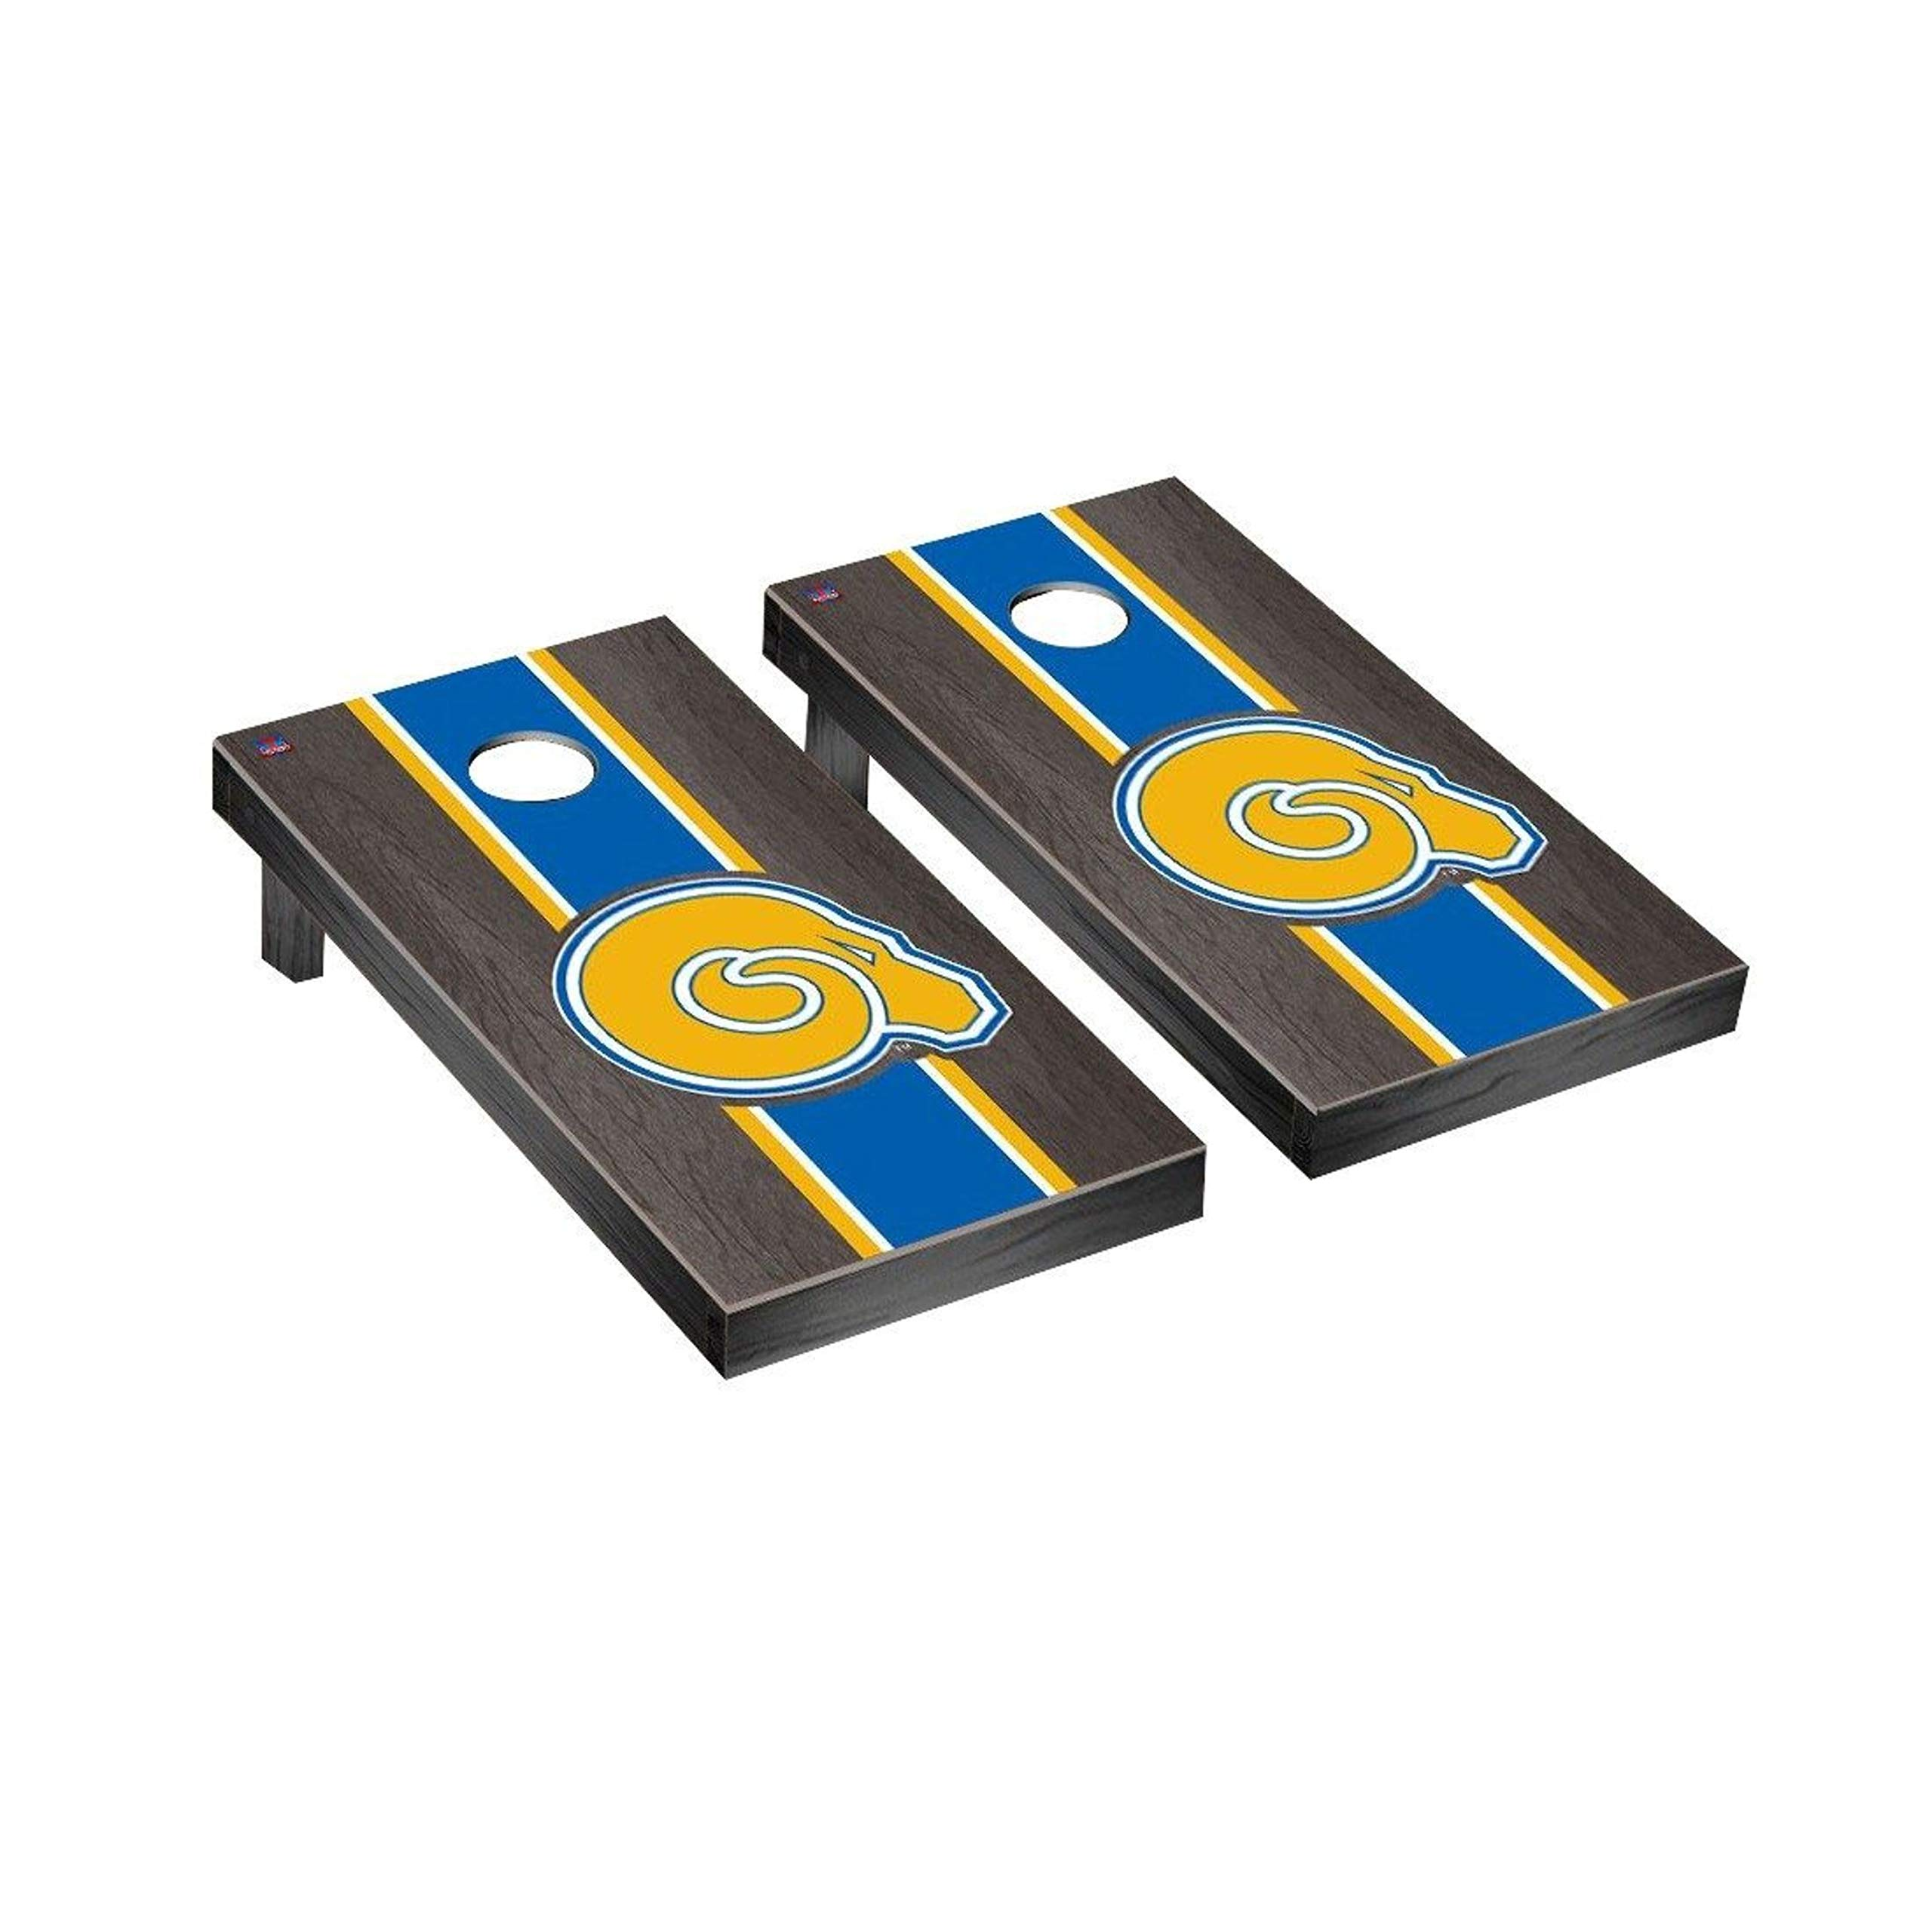 Victory Tailgate Regulation Collegiate NCAA Onyx Stained Stripe Series Cornhole Board Set - 2 Boards, 8 Bags - Albany State Golden Rams